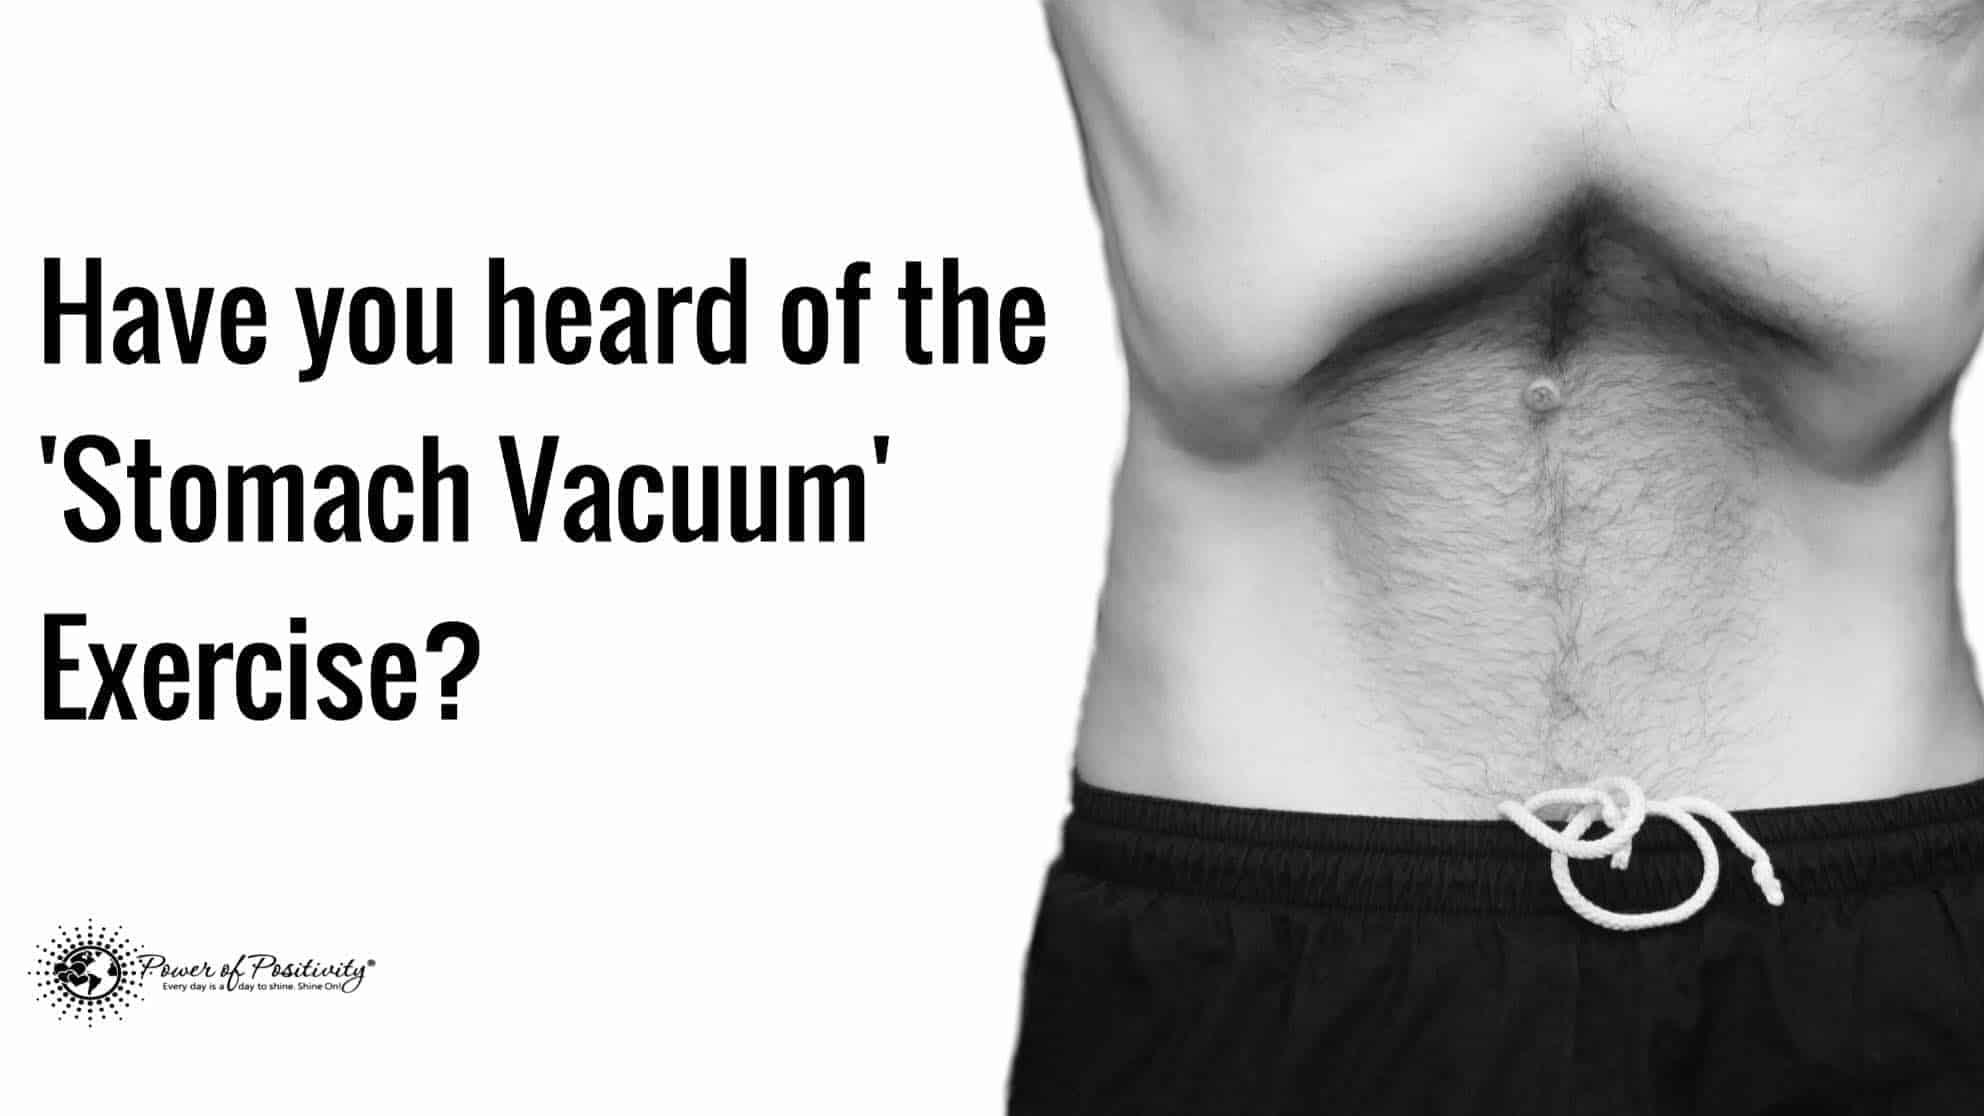 The Stomach Vacuum Exercise - Bodybuilding.com